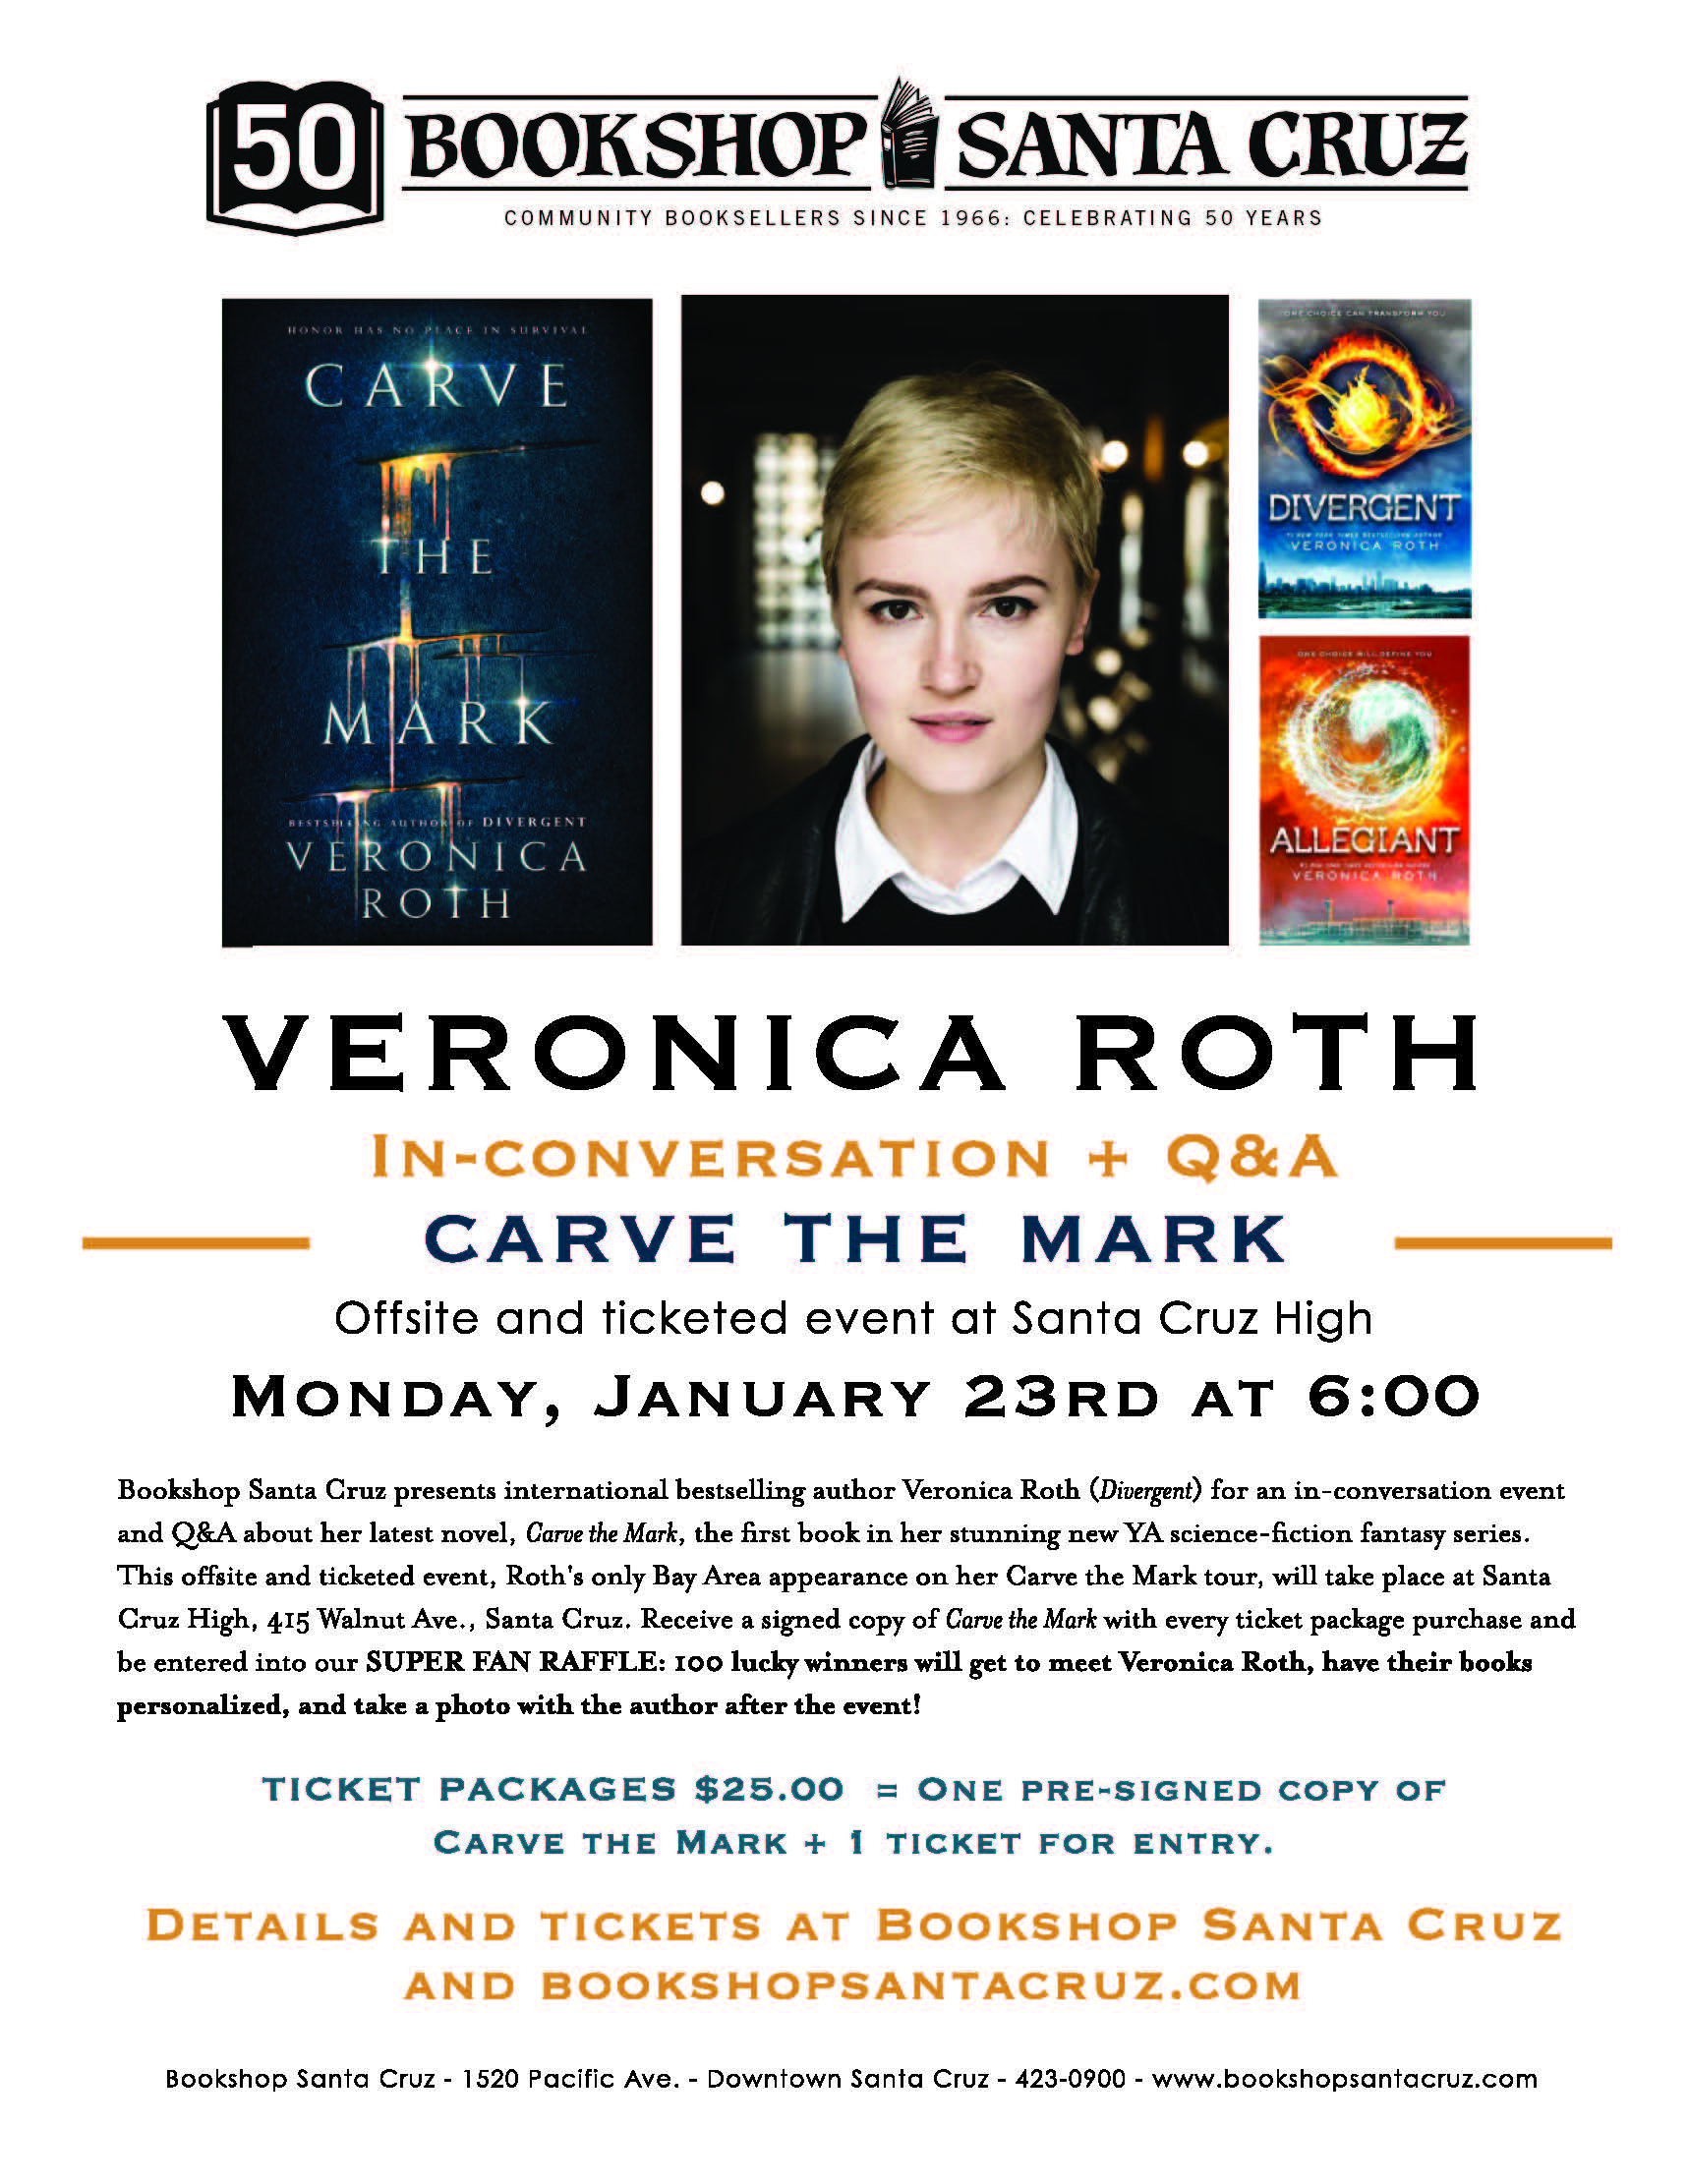 Veronica Roth Bookshop Santa Cruz